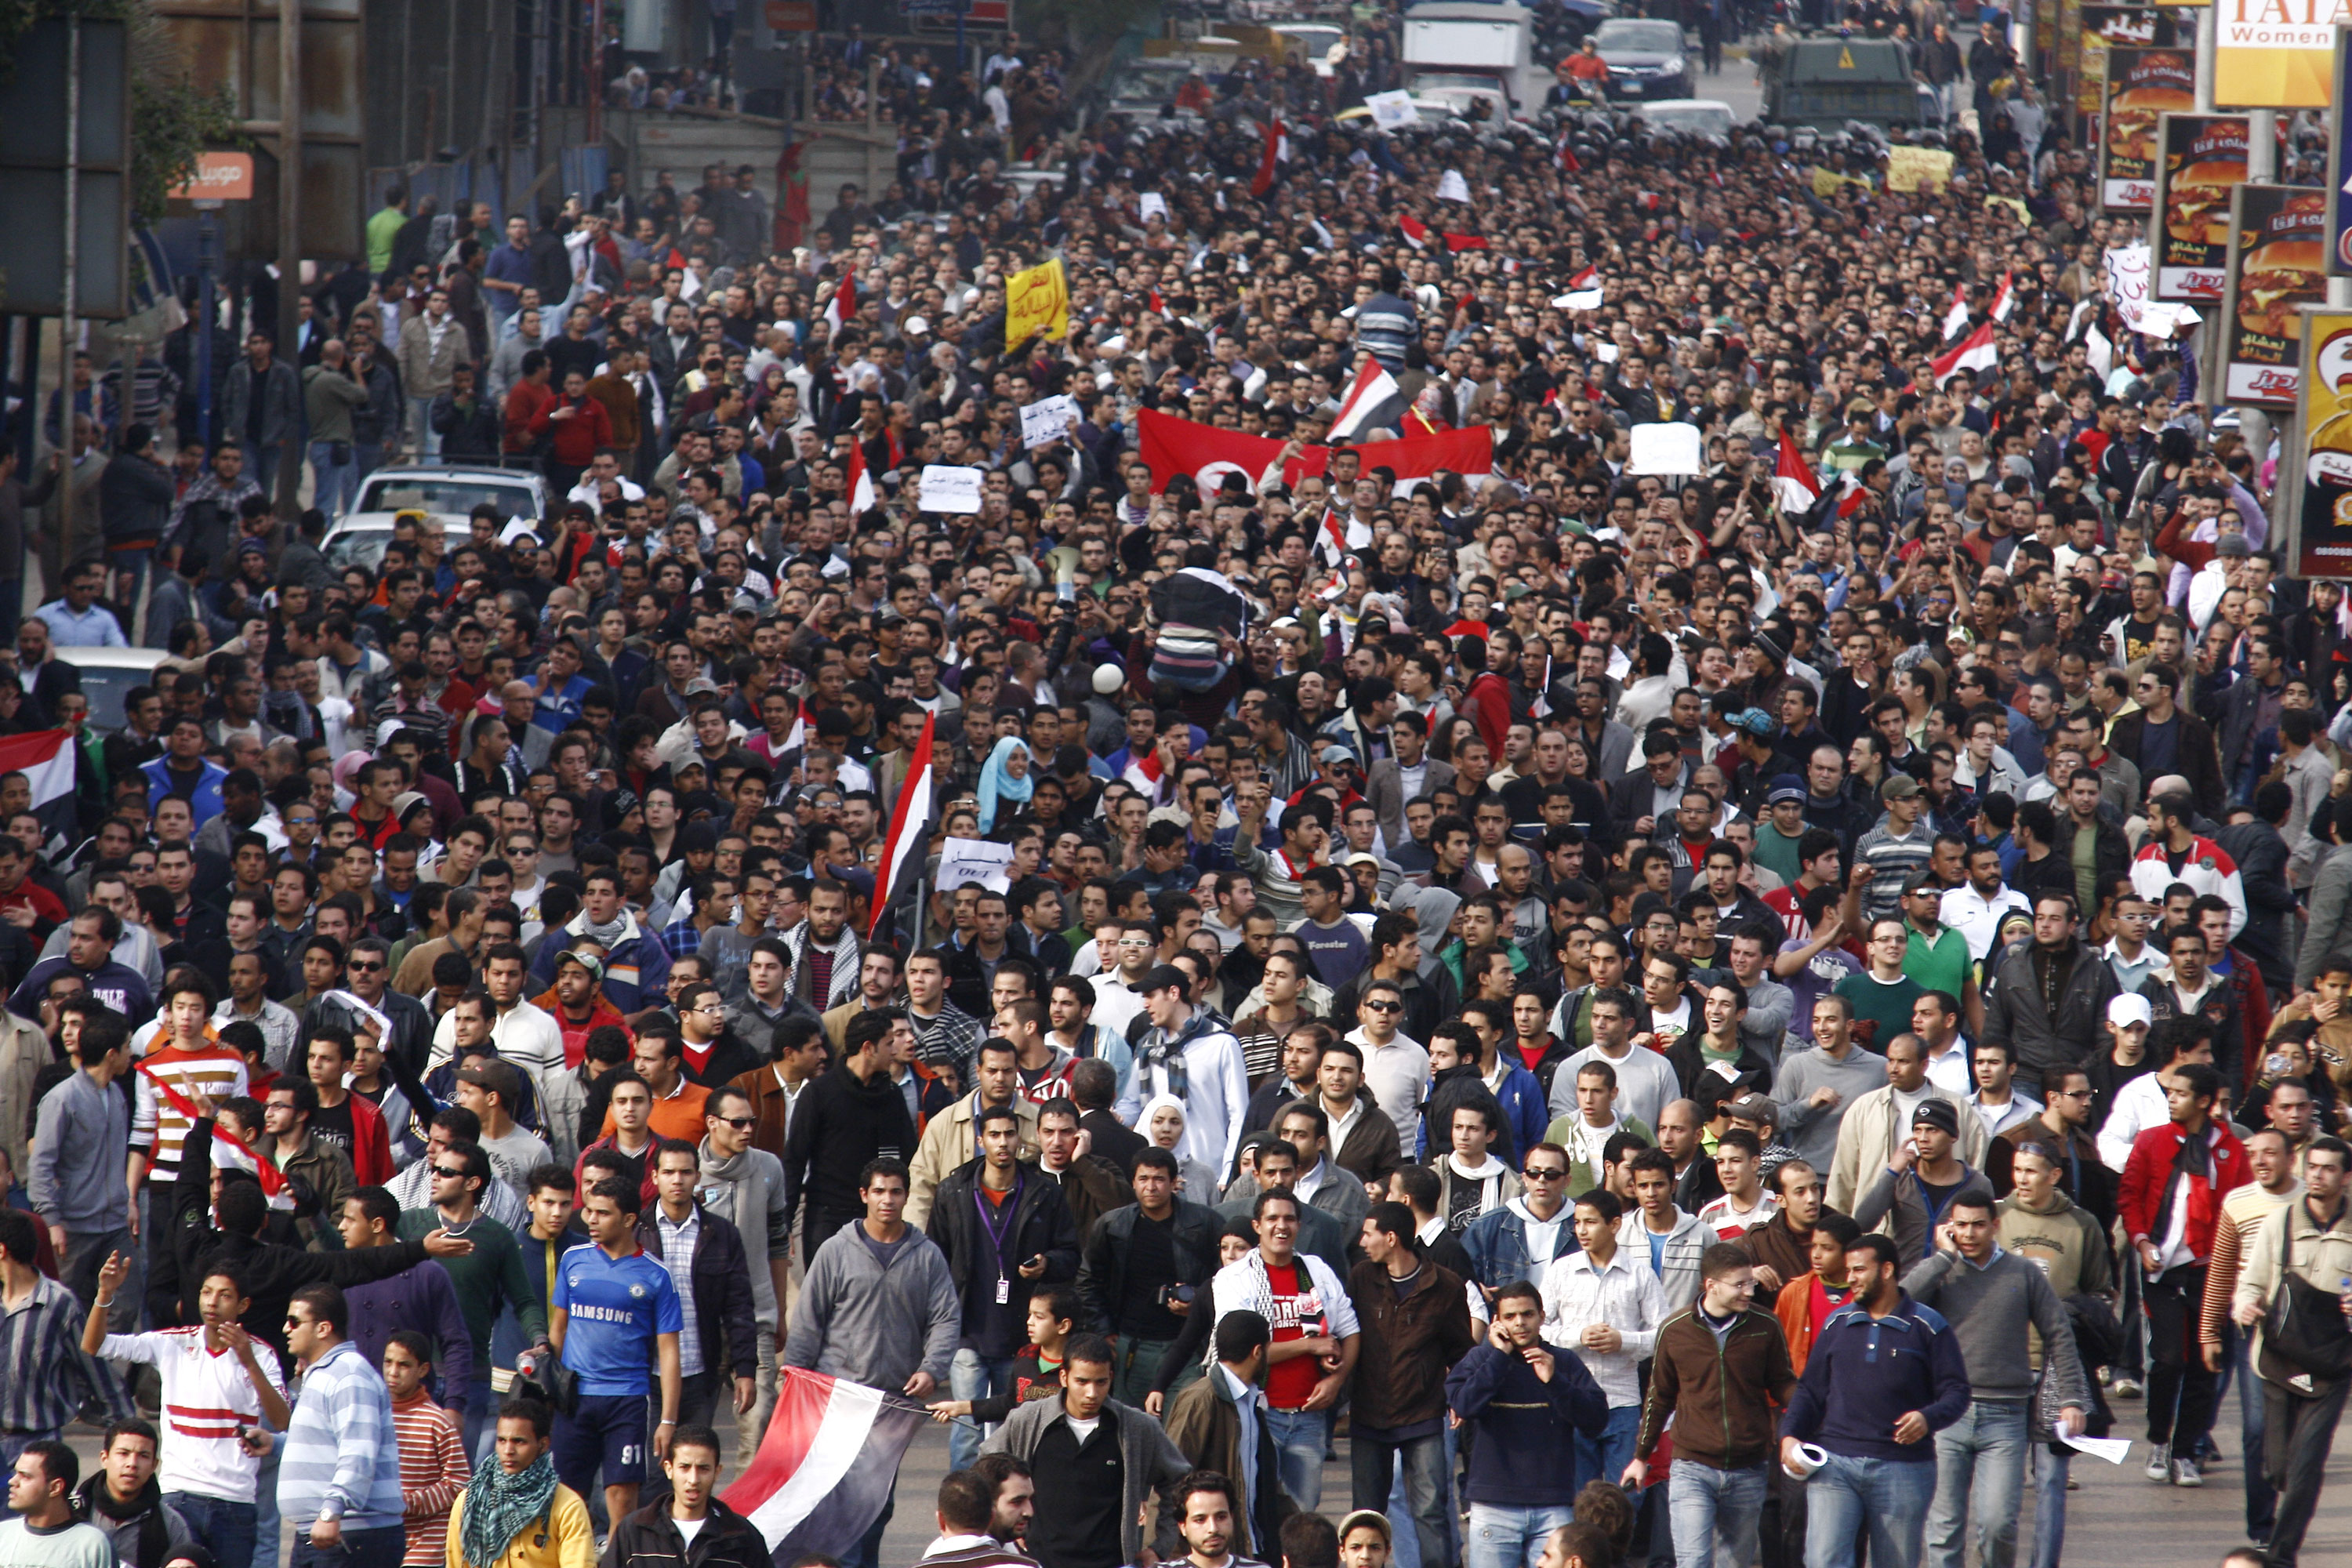 A crowd of demonstrators walks through Cairo on January 25, 2011, to demand the end of President Hosni Mubarak's nearly 30 years in power. [AP]